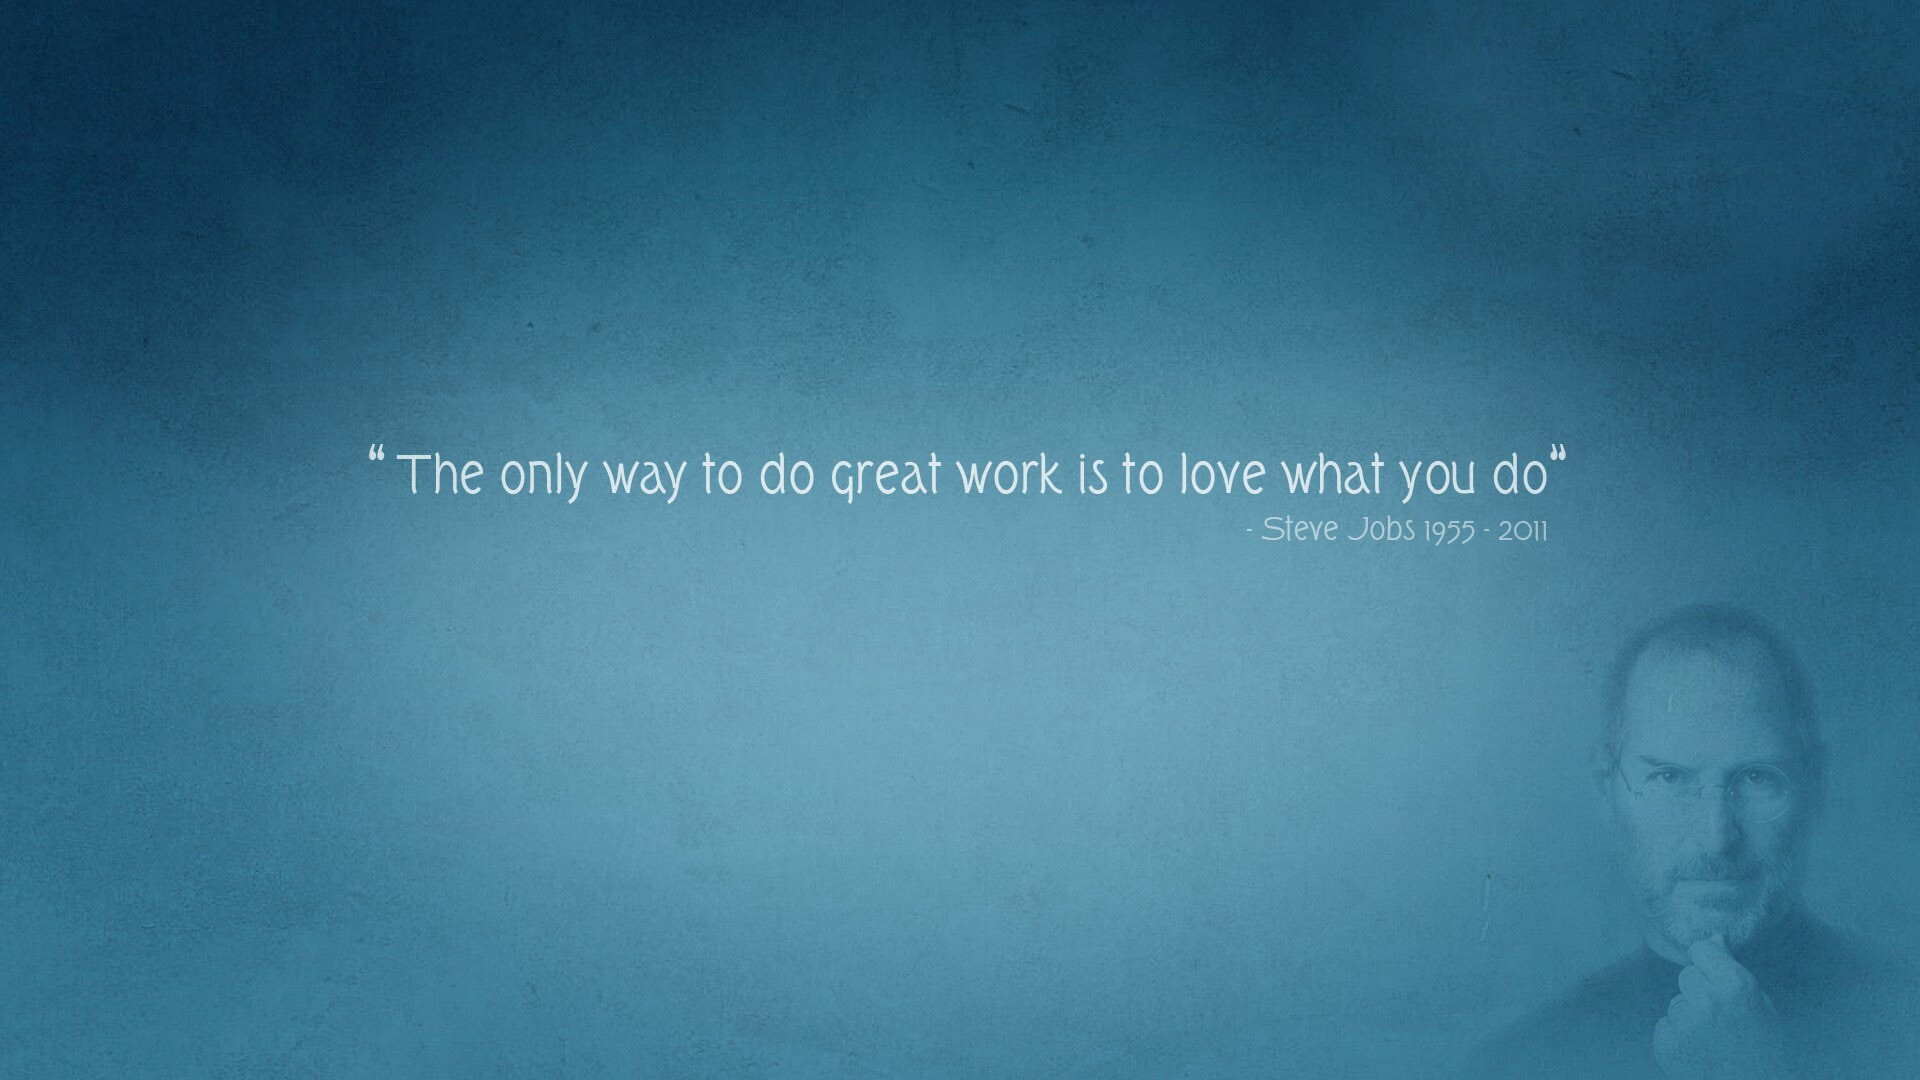 Love Thought Wallpaper In Hd : Pin 2560x1440 Work Minimalist Typography Desktop Wallpaper ...